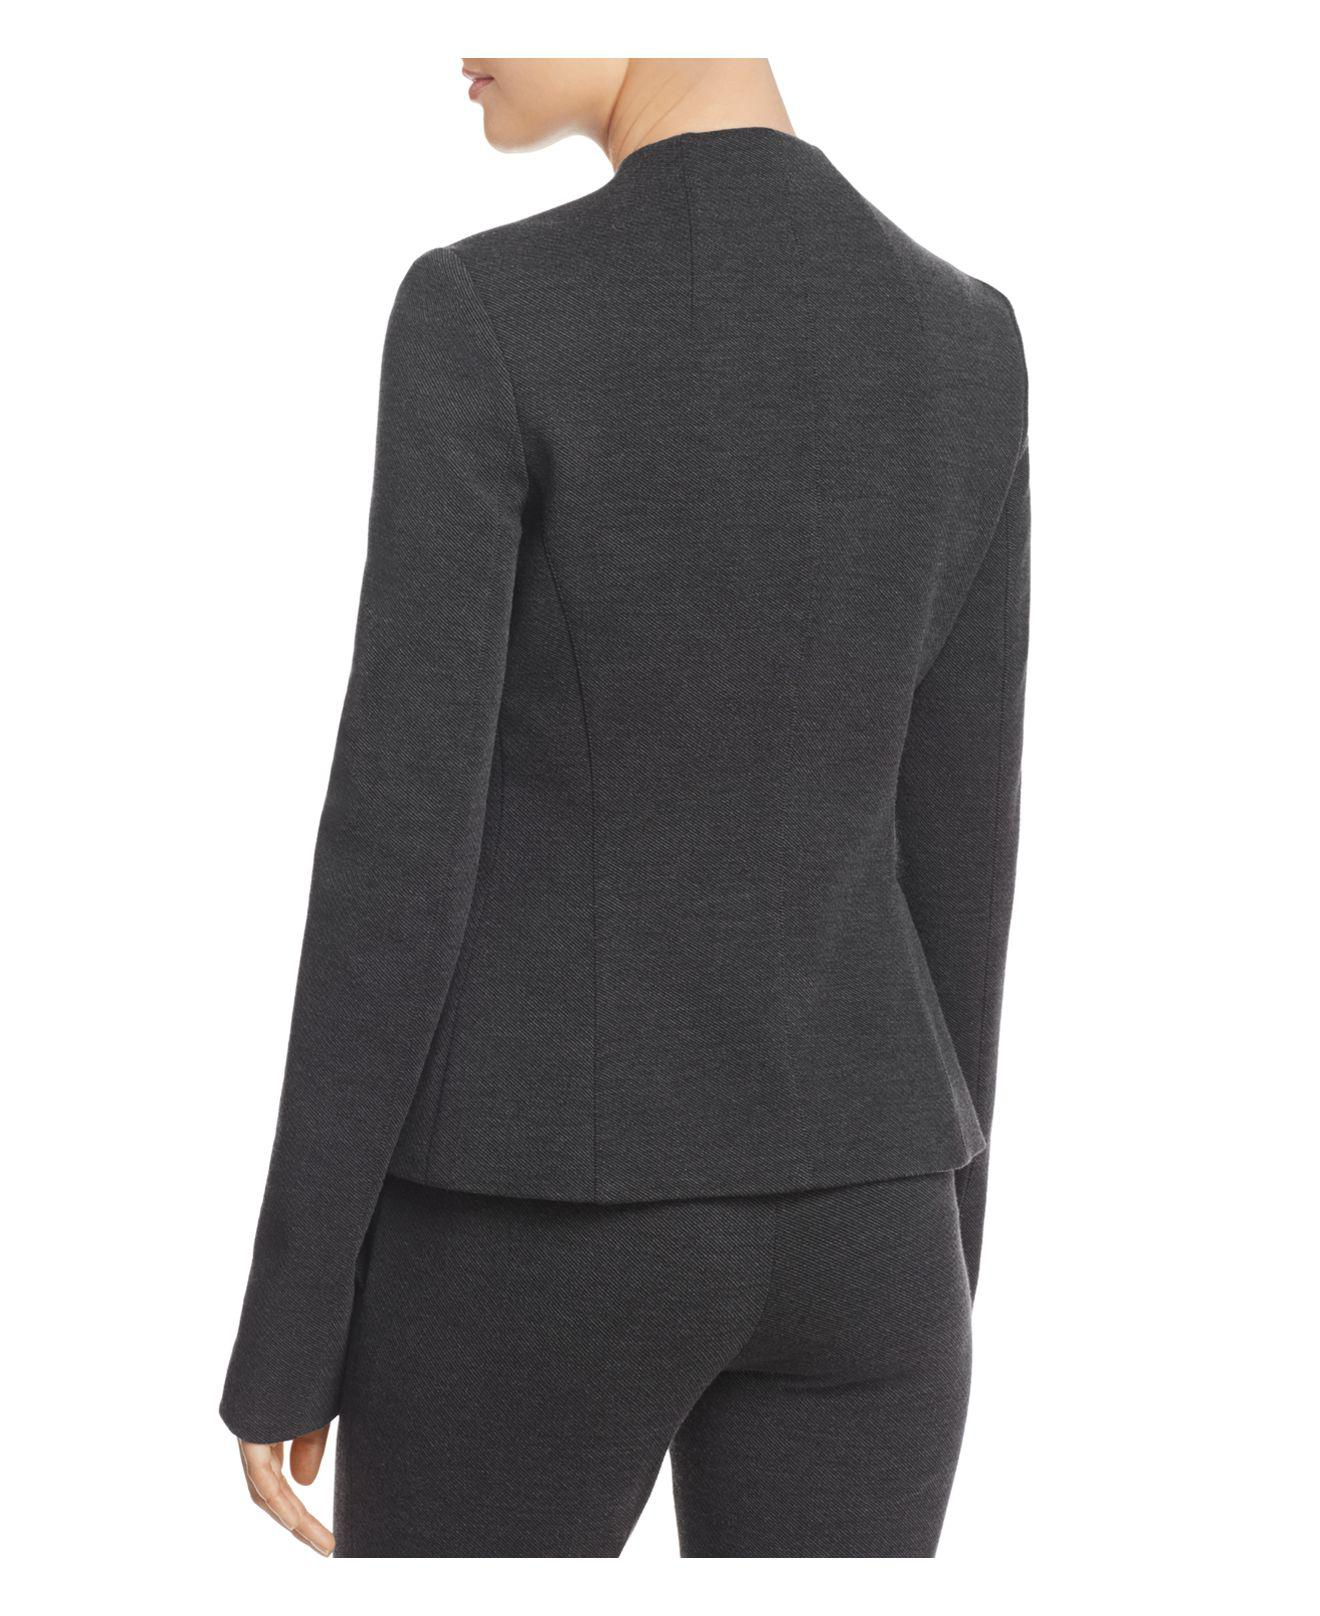 6fc3bc6db9 Theory Sculpted Knit Twill Jacket in Gray - Lyst